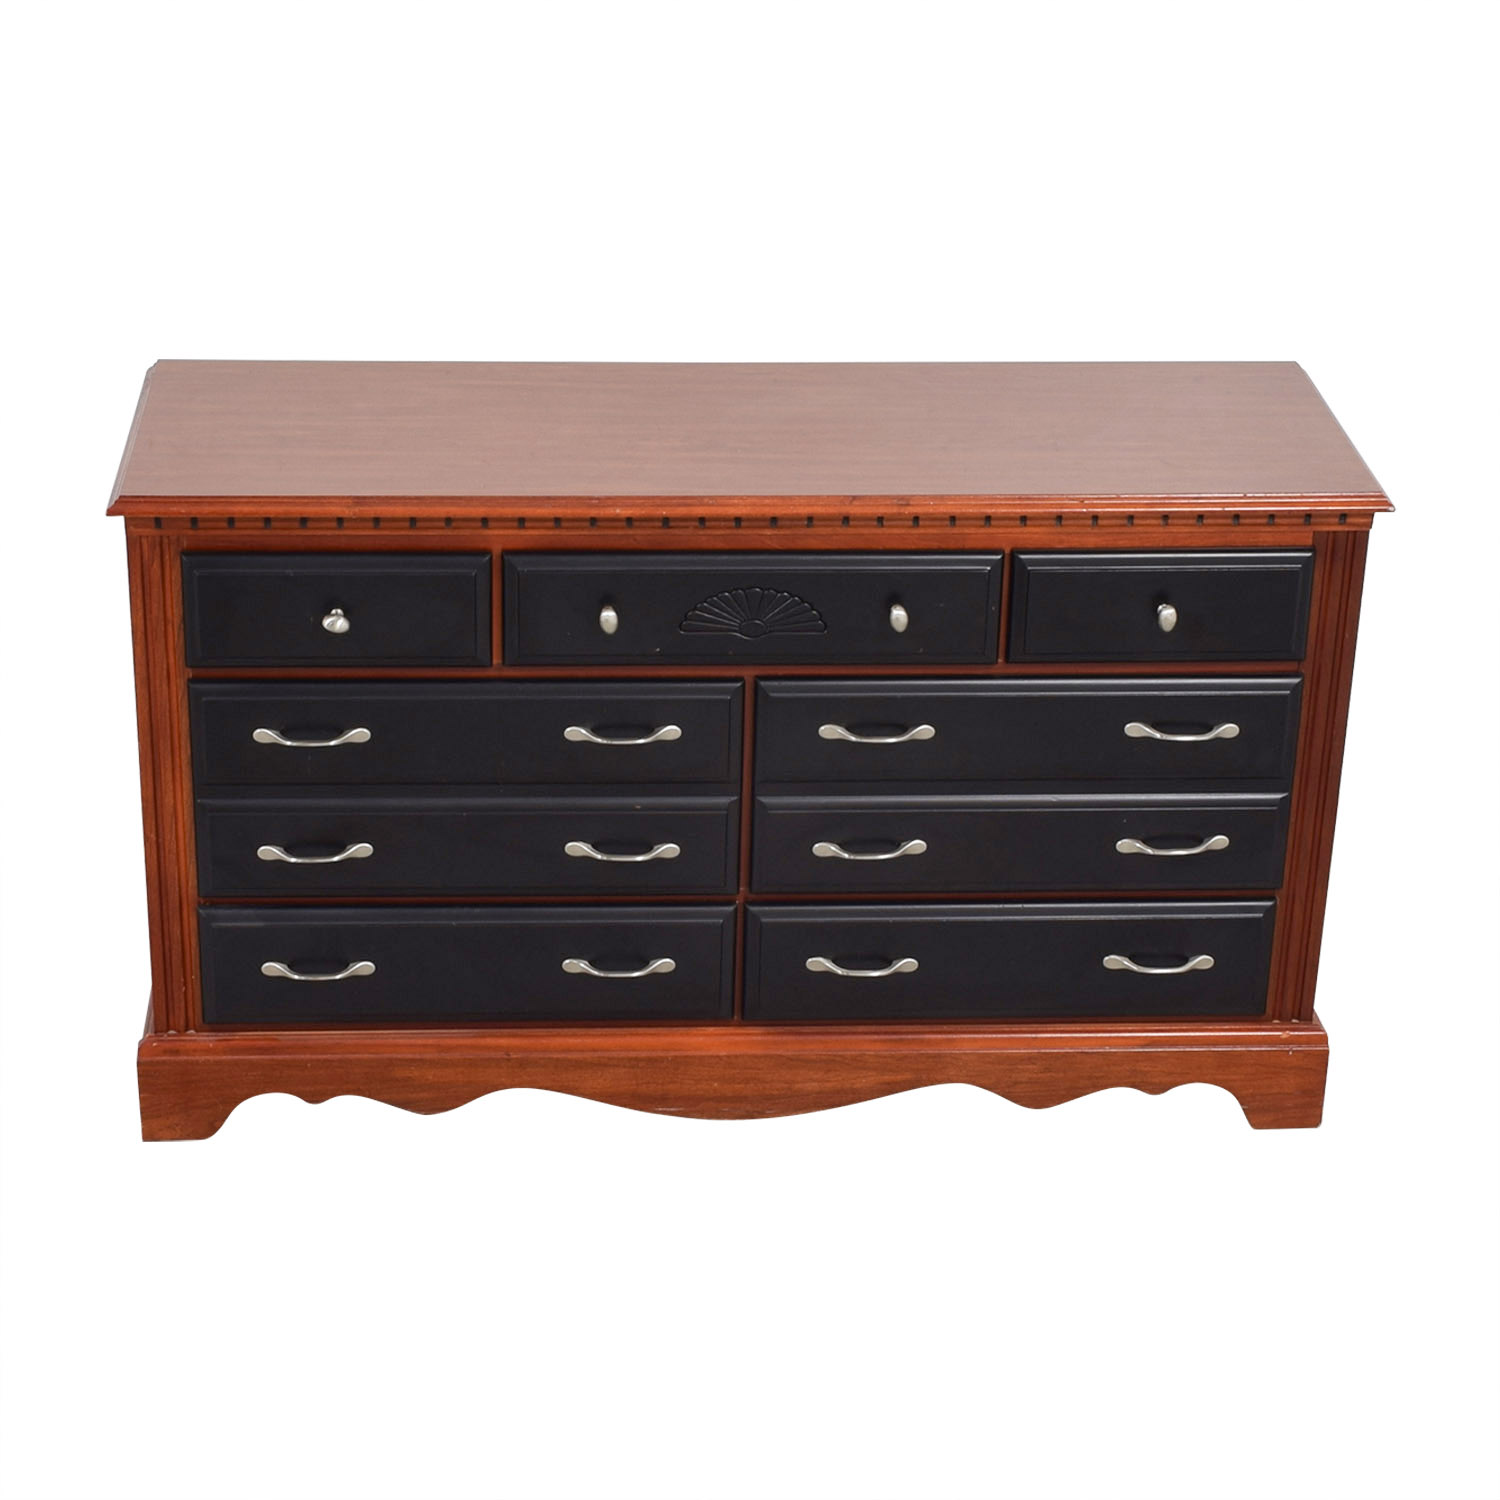 shop Two-Toned Black and Wood Seven-Drawer Dresser Sofas